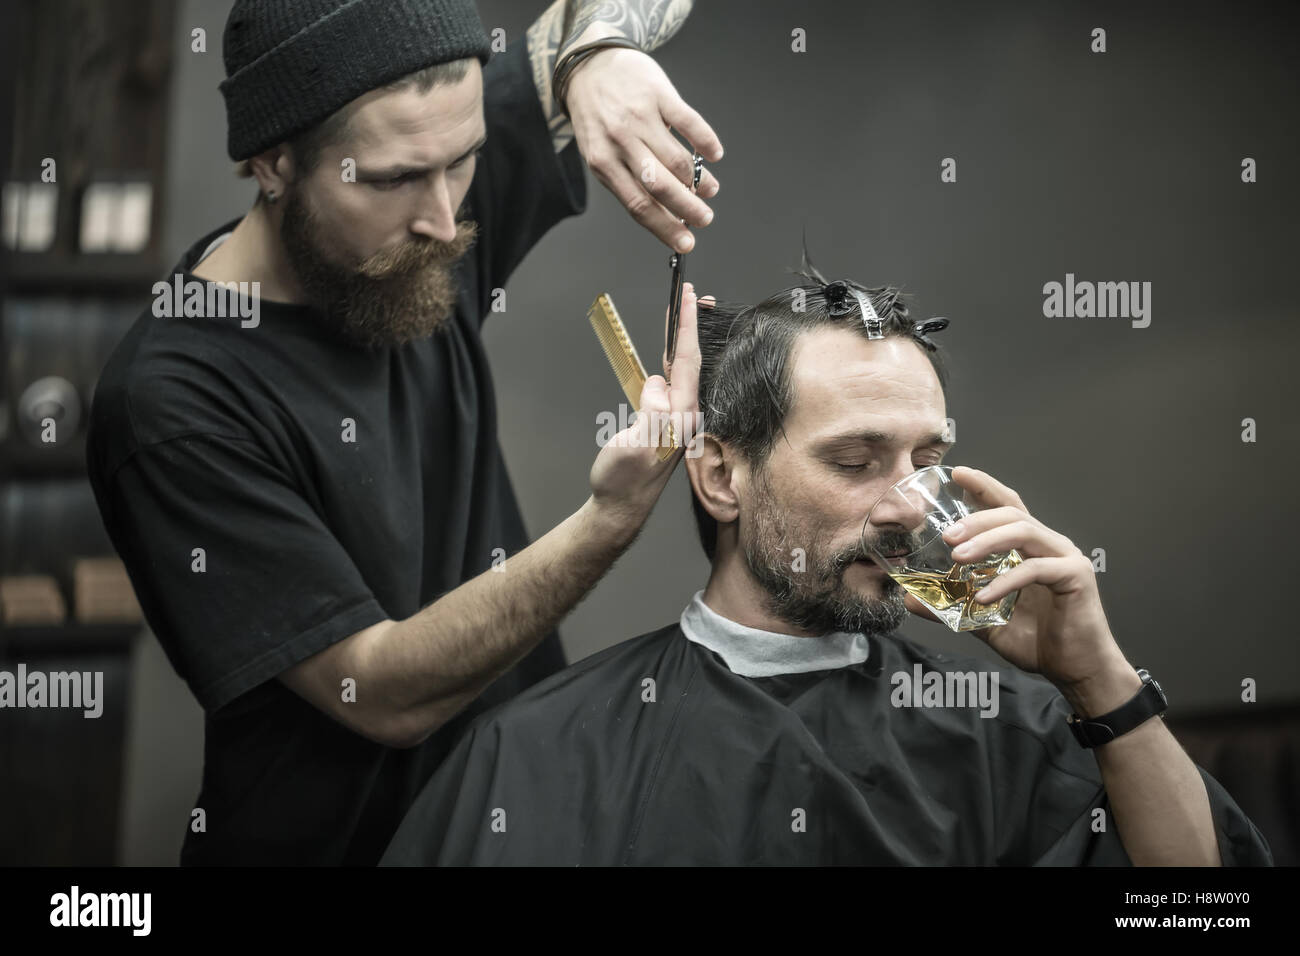 Drinking and cutting in barbershop - Stock Image